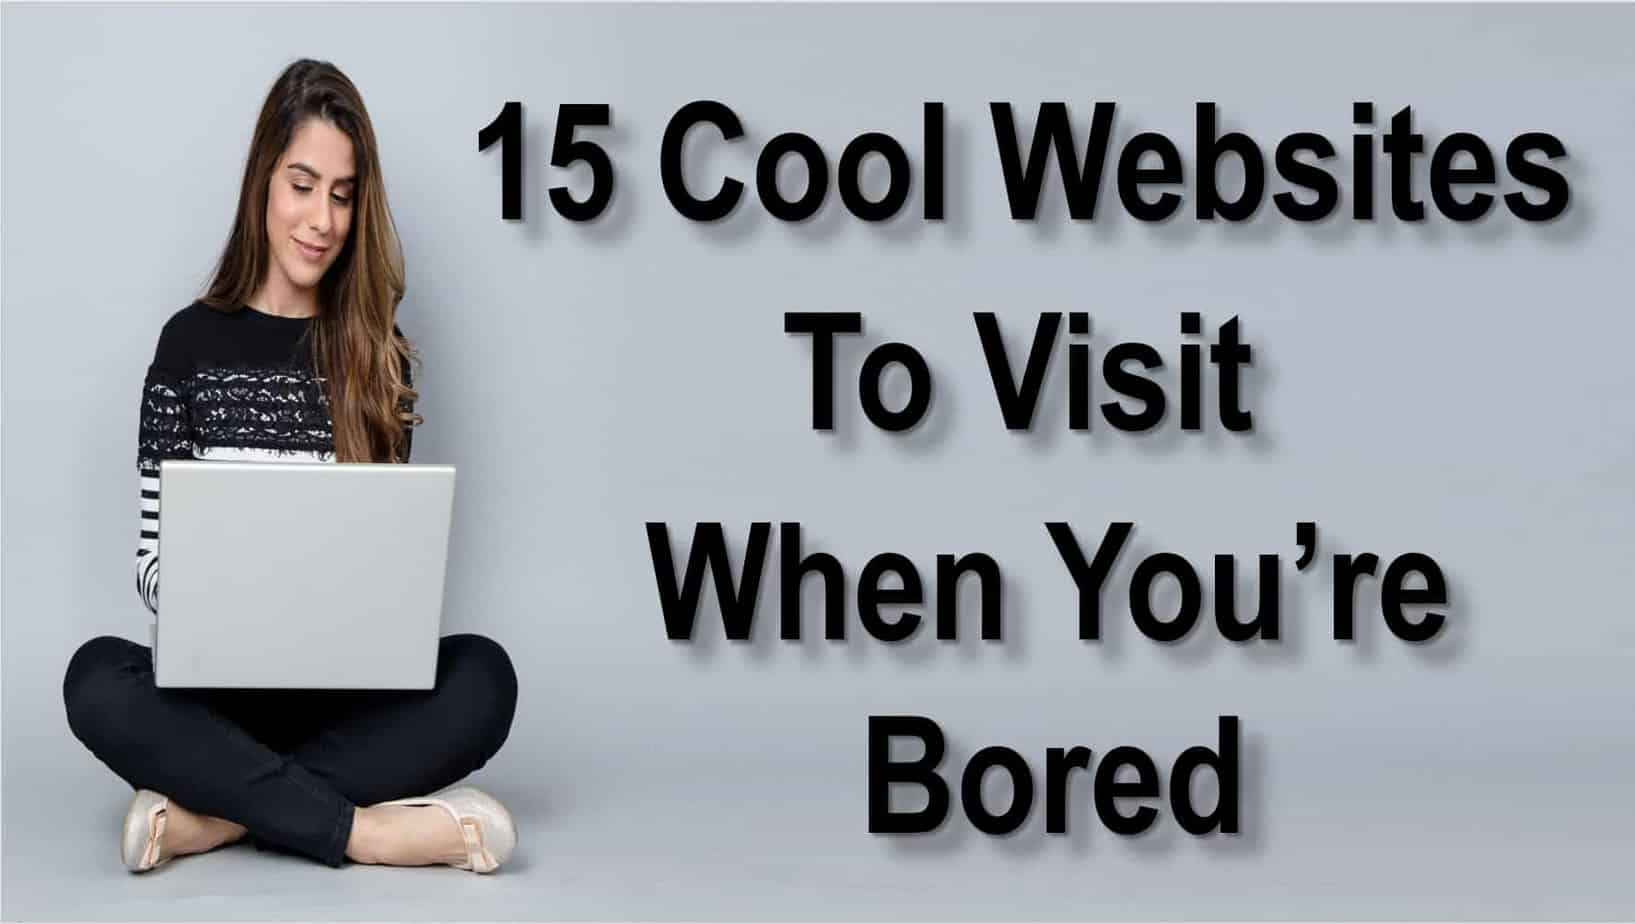 15 cool websites